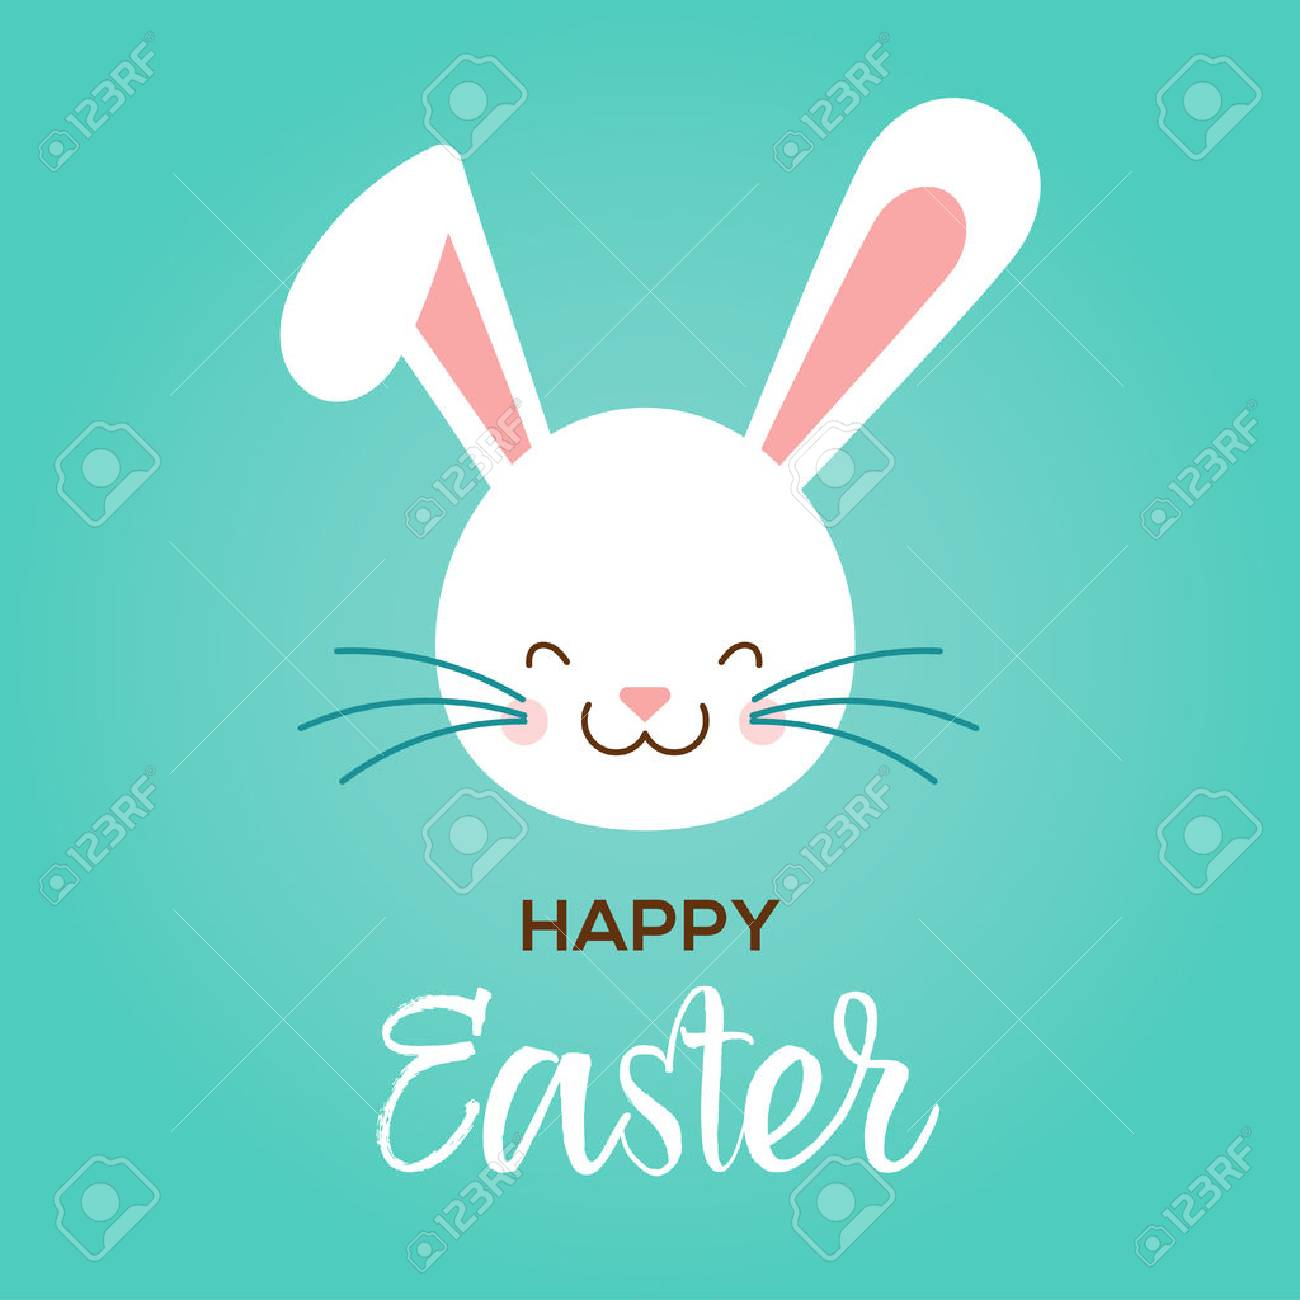 Colorful happy easter greeting card with rabbit bunny and text colorful happy easter greeting card with rabbit bunny and text stock vector 52823554 m4hsunfo